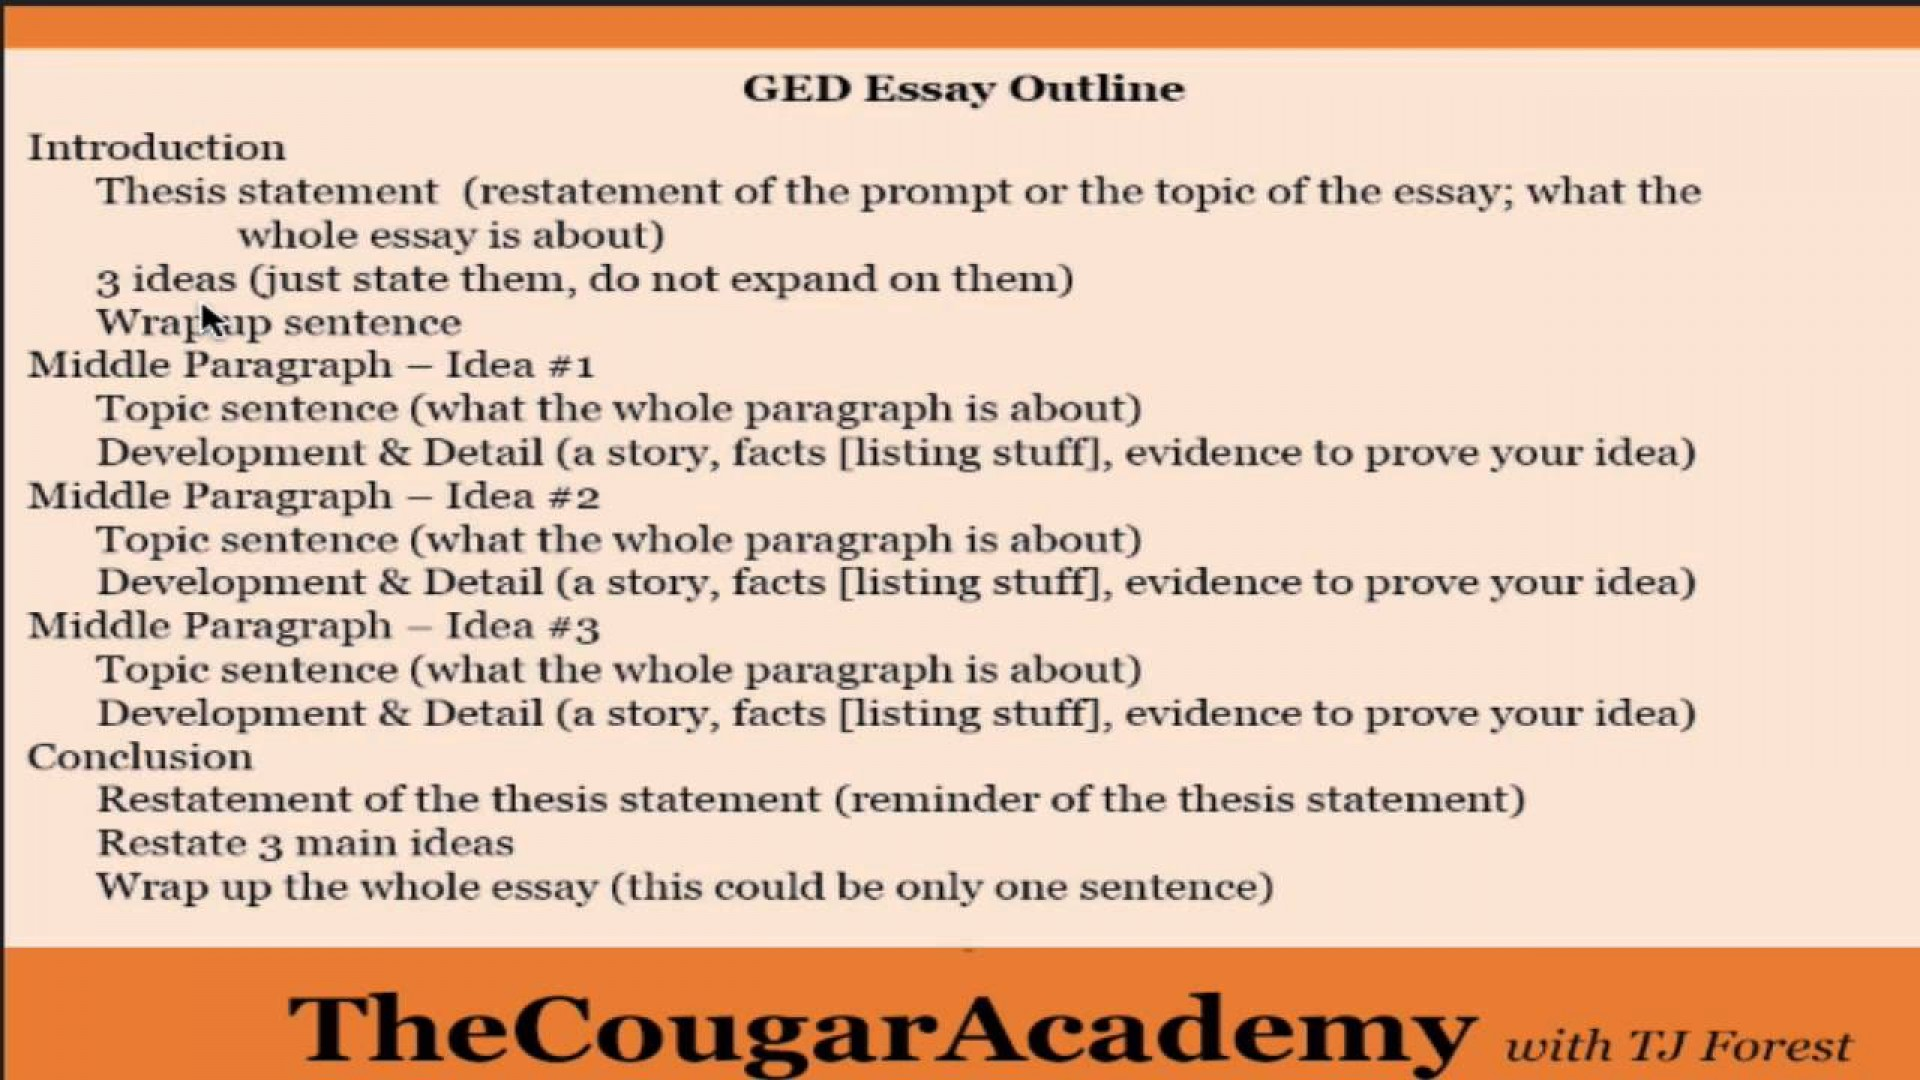 019 Ged Essay Examples Example Ideas Collection Lake